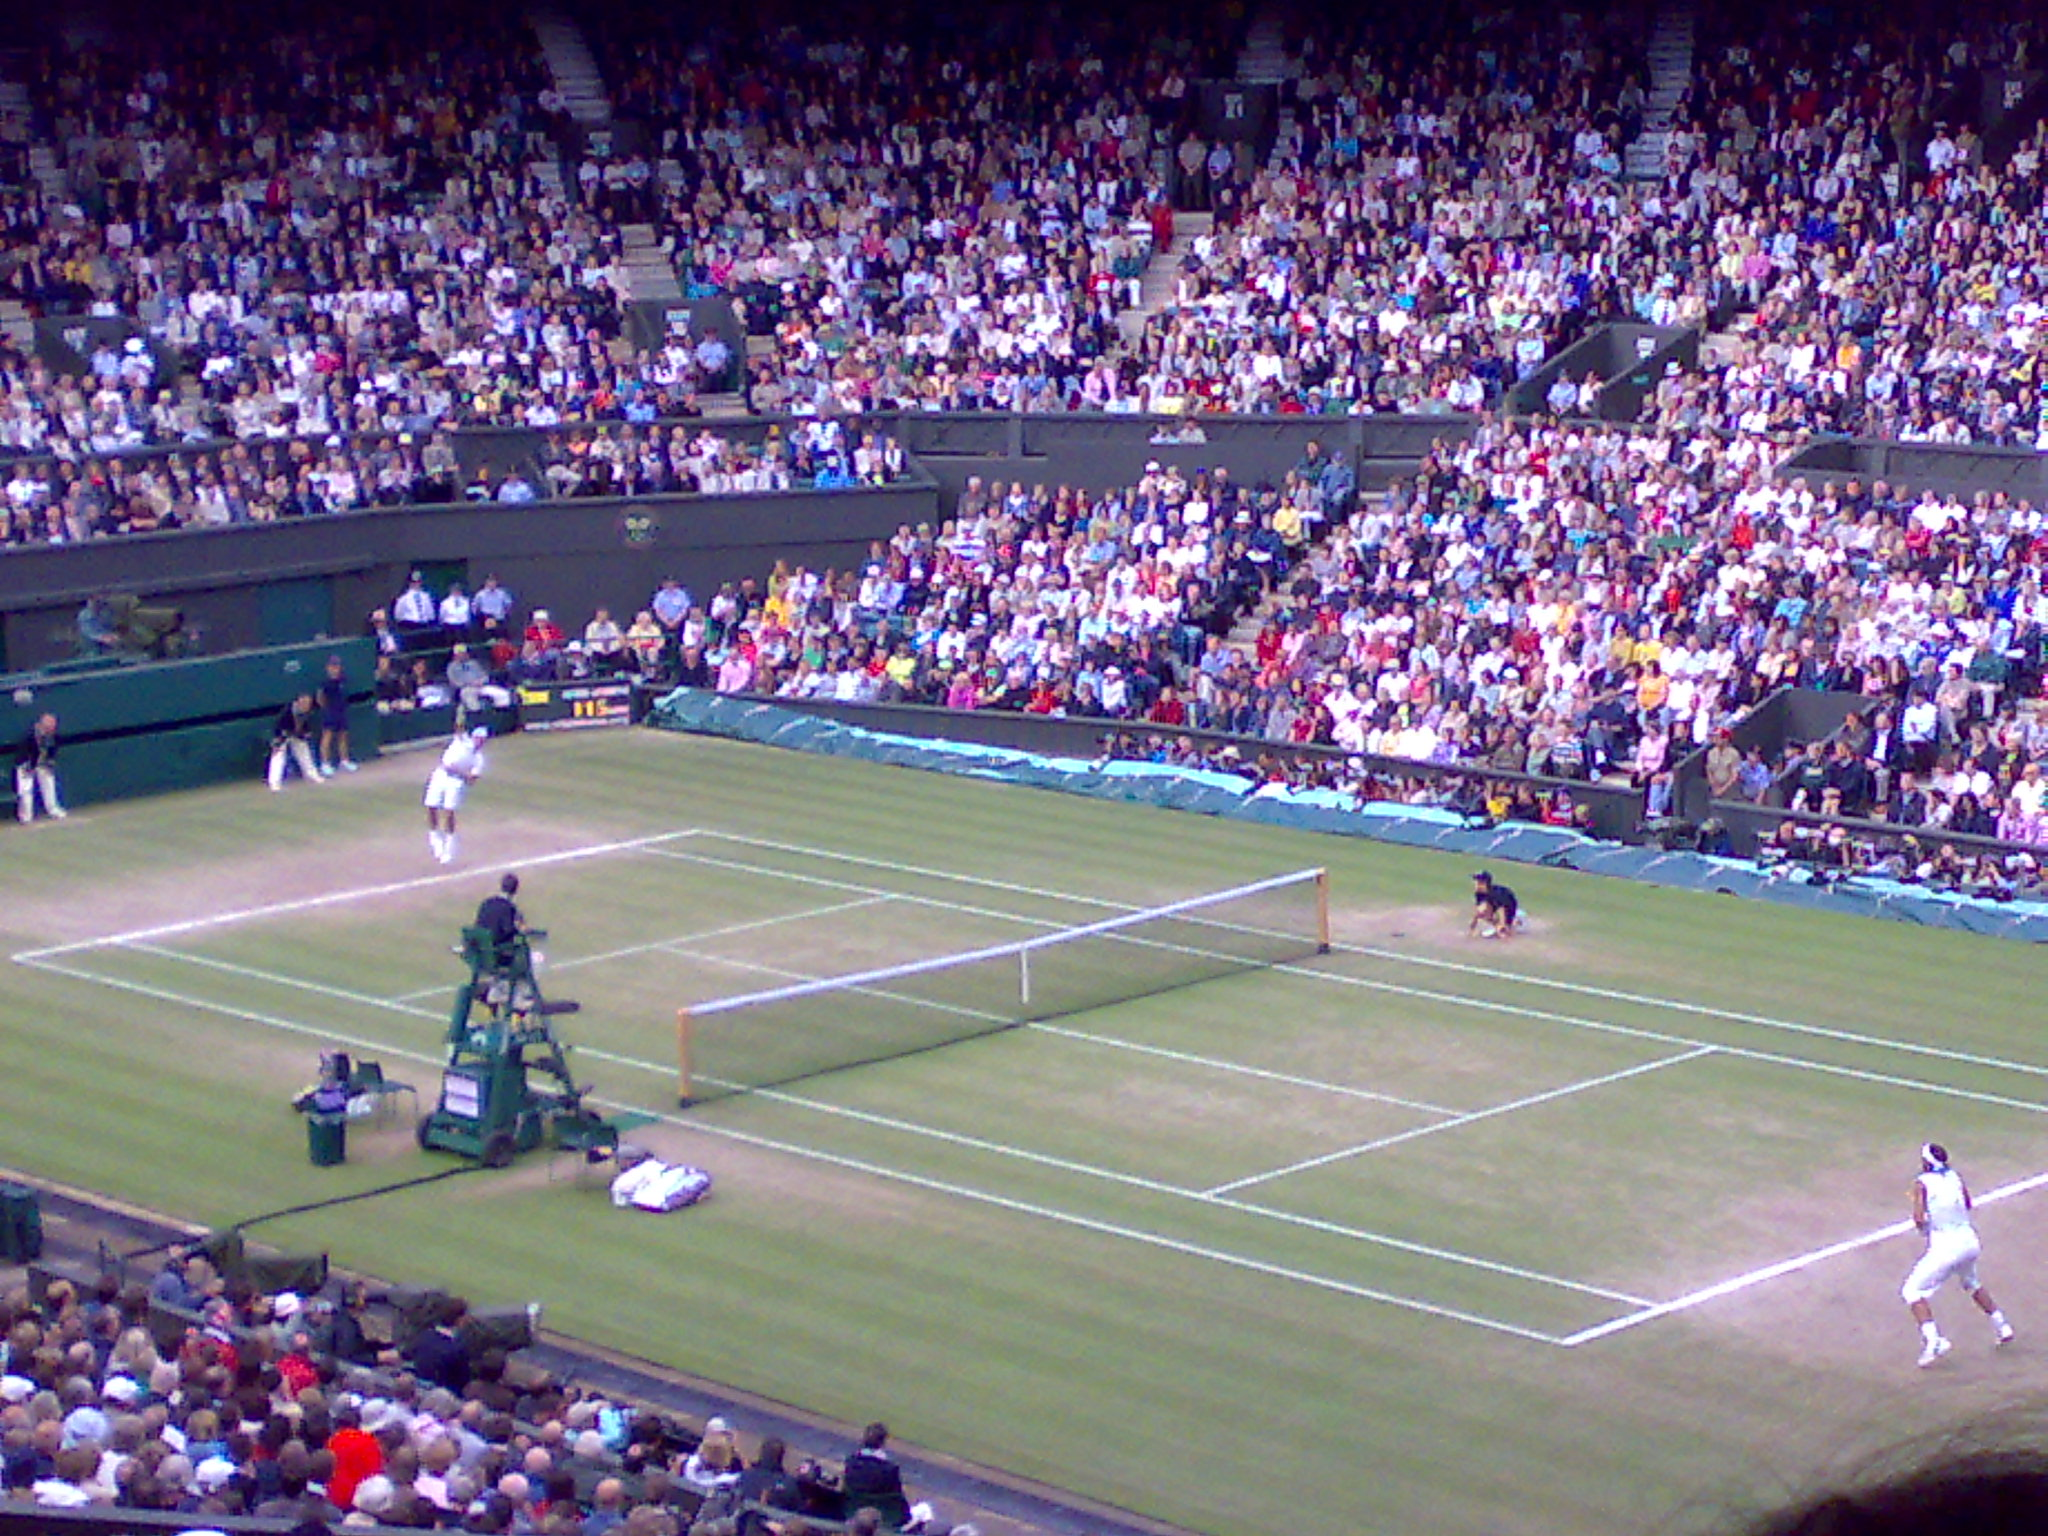 Roger Federer (far court) serves to Rafael Nadal during the 2008 Wimbledon final that some consider the greatest match ever.